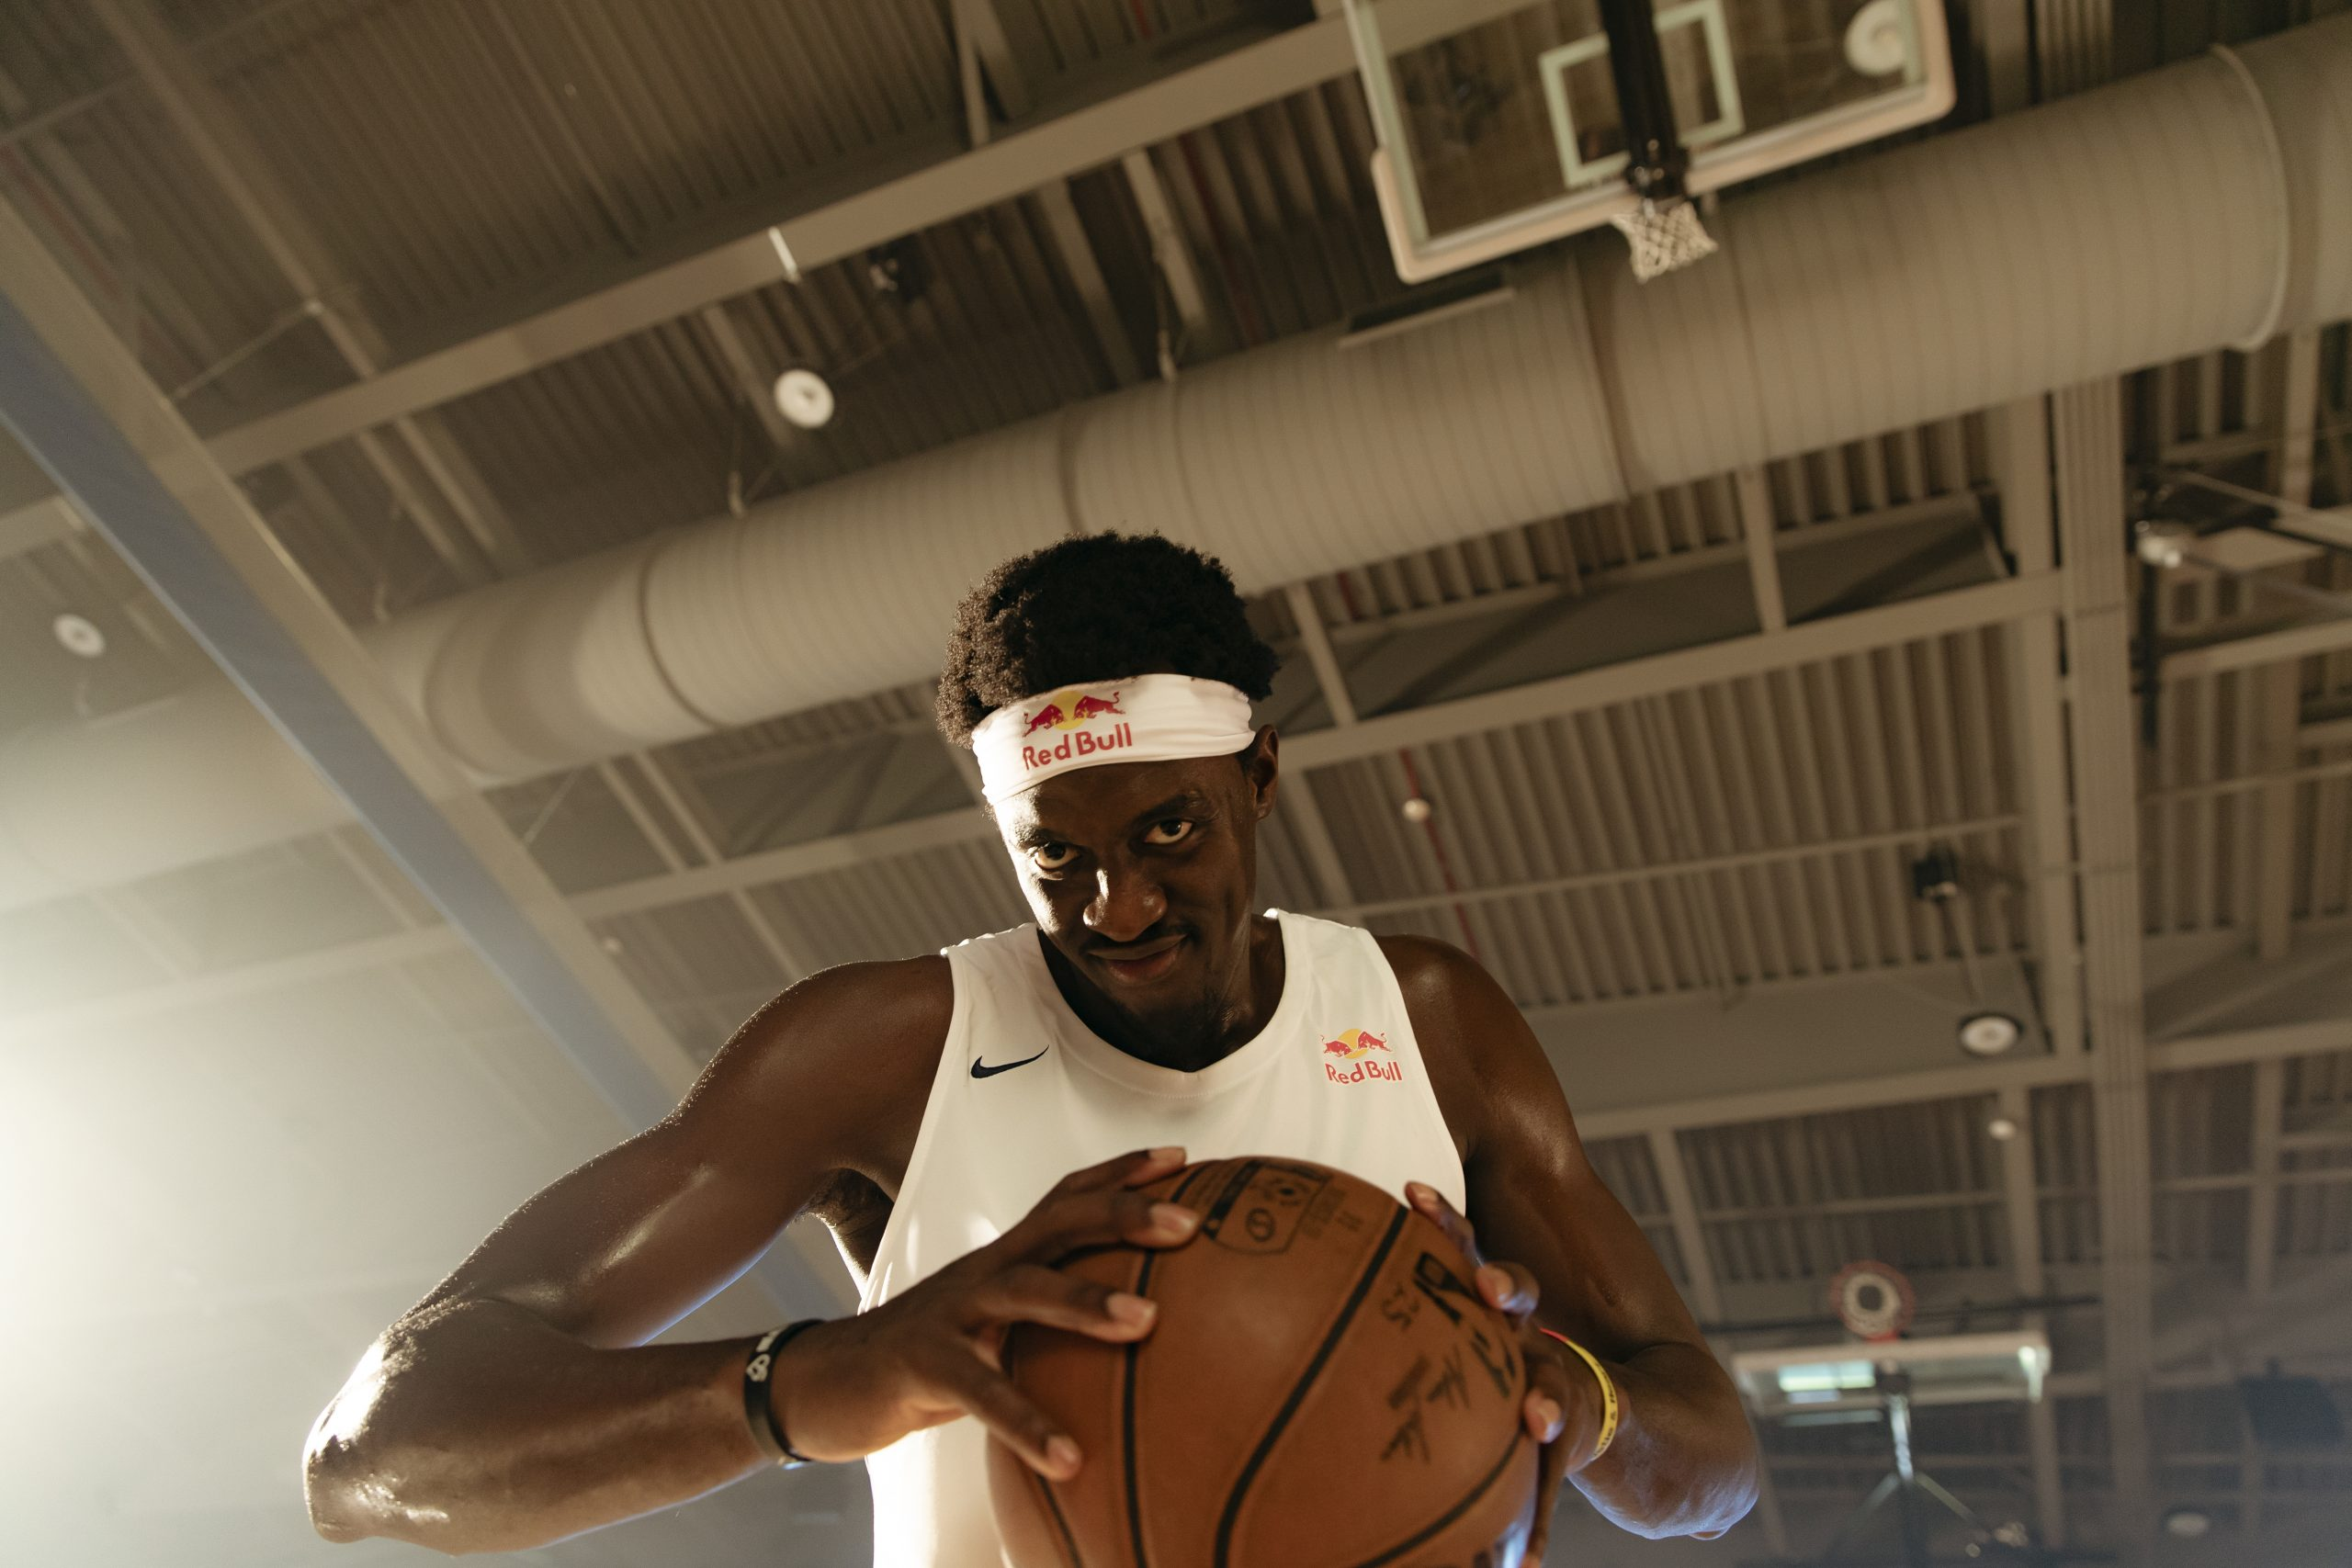 Red Bull presents 'The Play' with Pascal Siakam